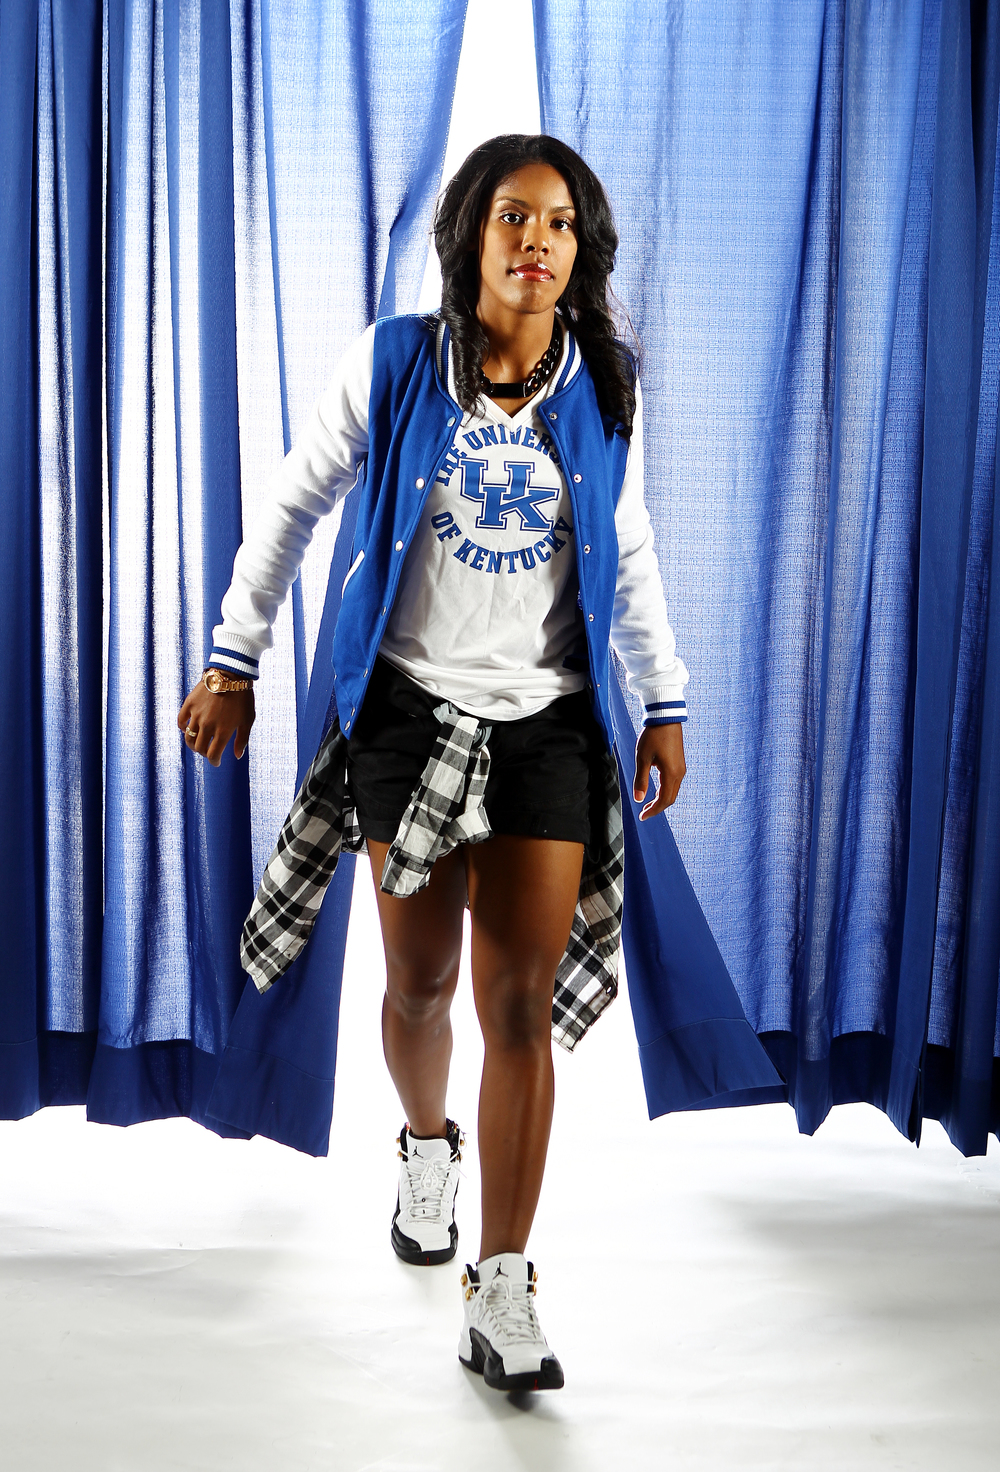 UK_wbball_outfits_472.jpg